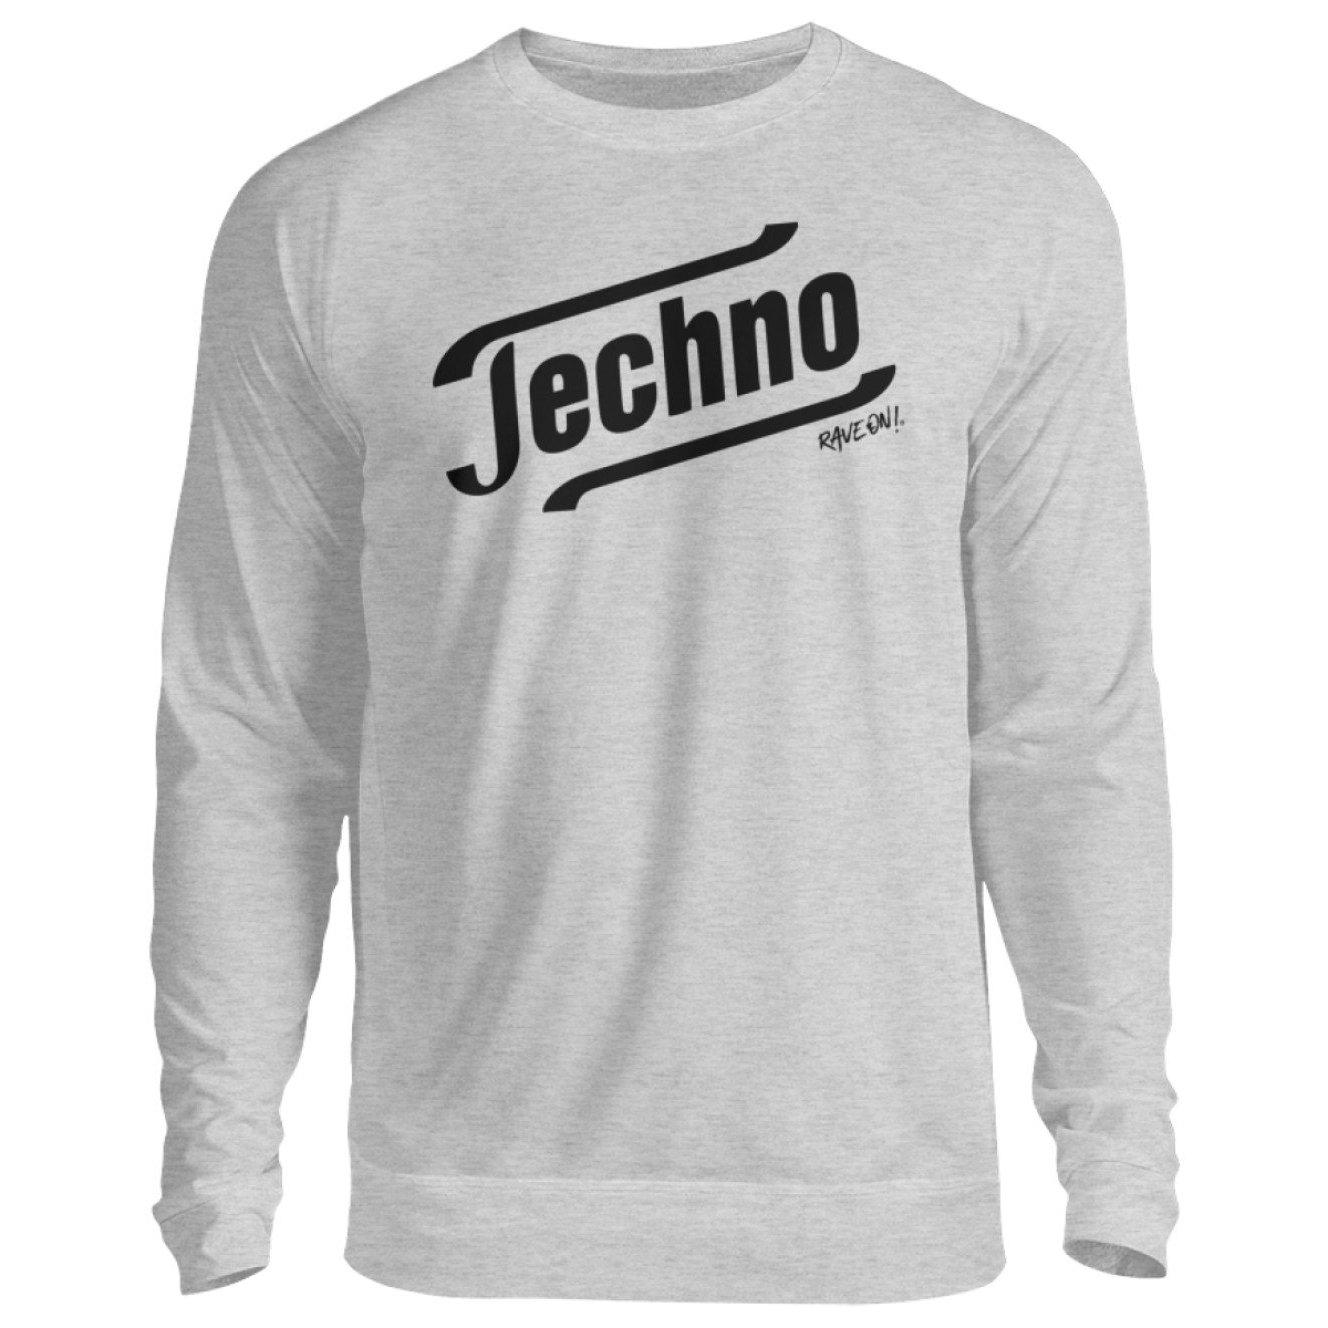 Techno Tempo White -Rave On!® - Unisex Pullover Unisex Sweatshirt Heather Gray / S - Rave On!® the club & techno scene shop for cool young fashion streetwear style & fashion outfits + sexy festival 420 stuff